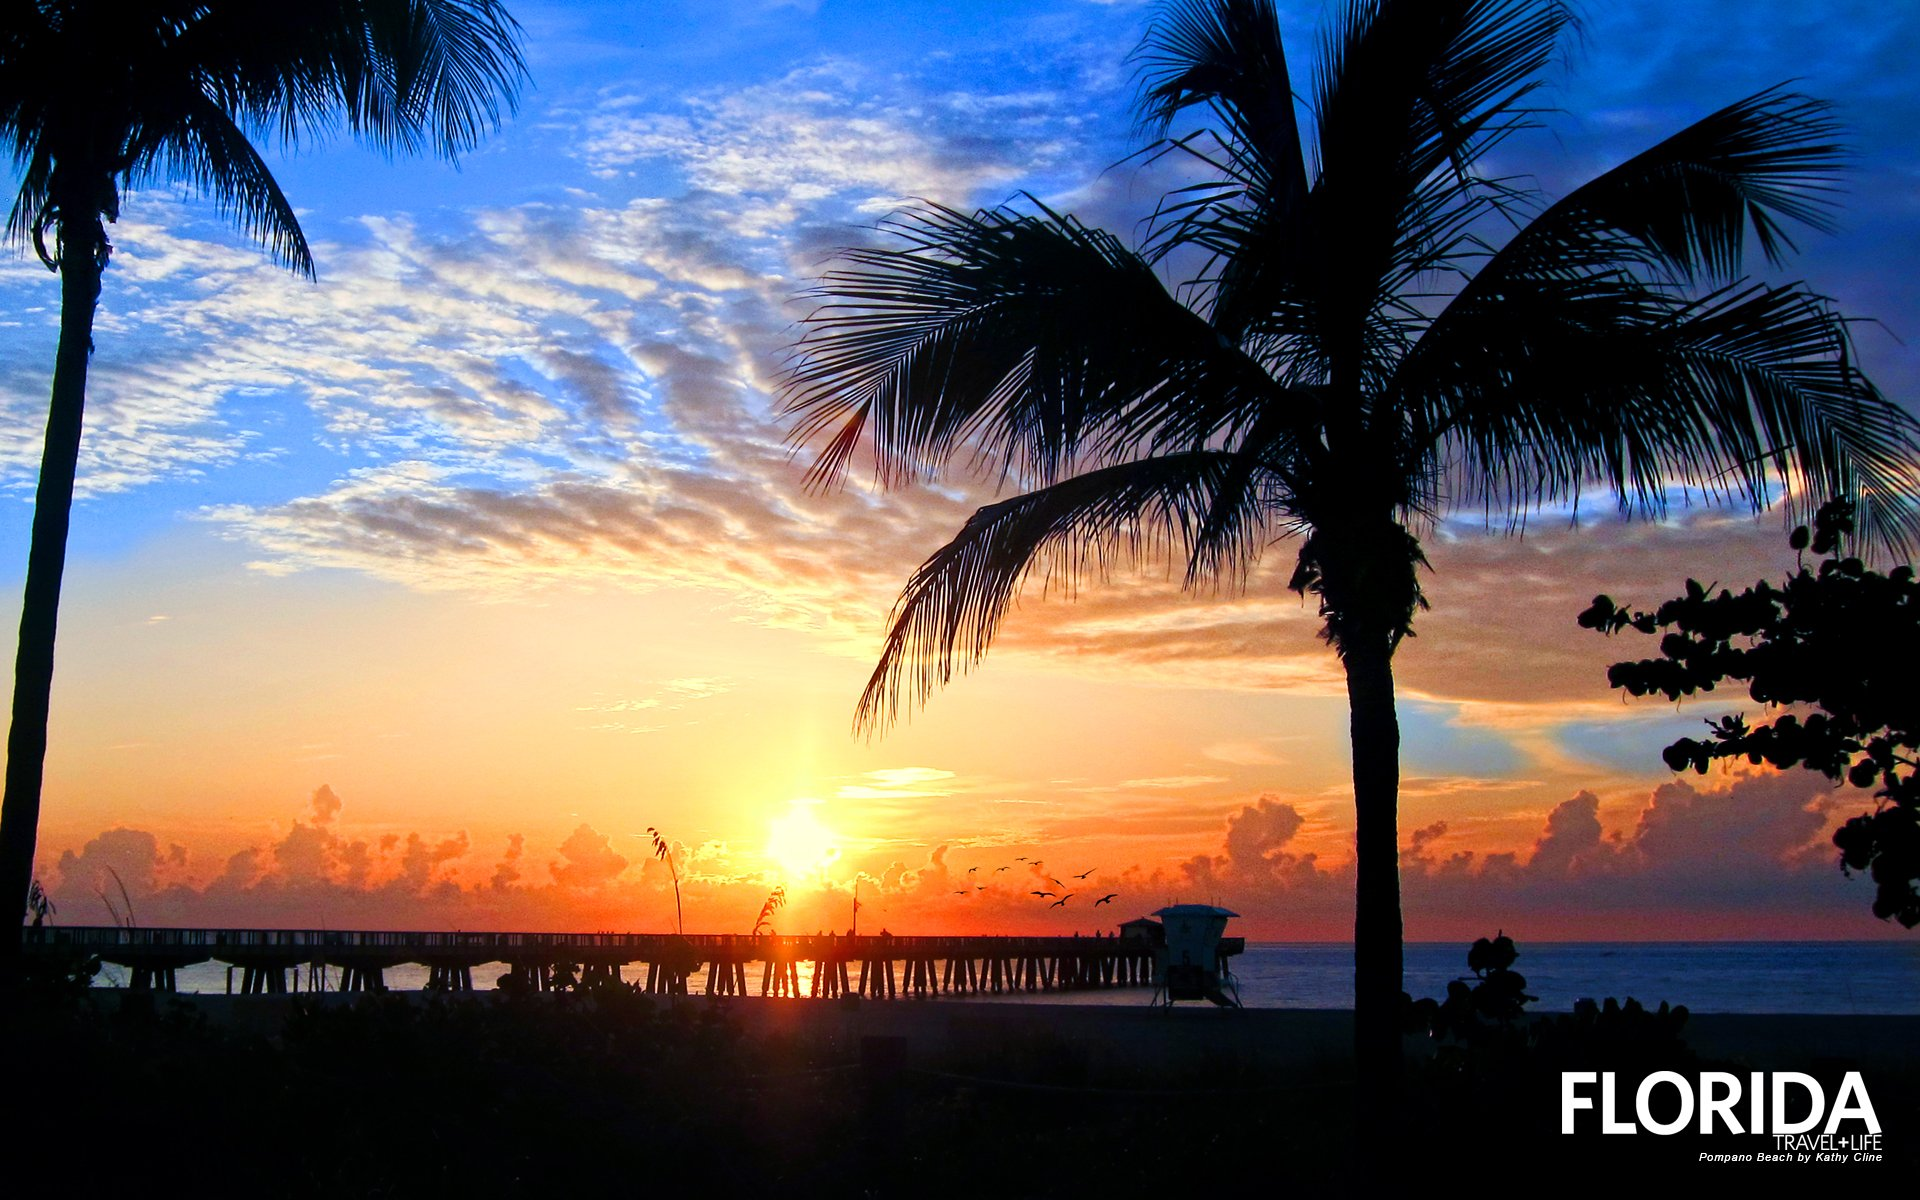 wallpapers computer wallpaper amazing florida images pompano beach 1920x1200